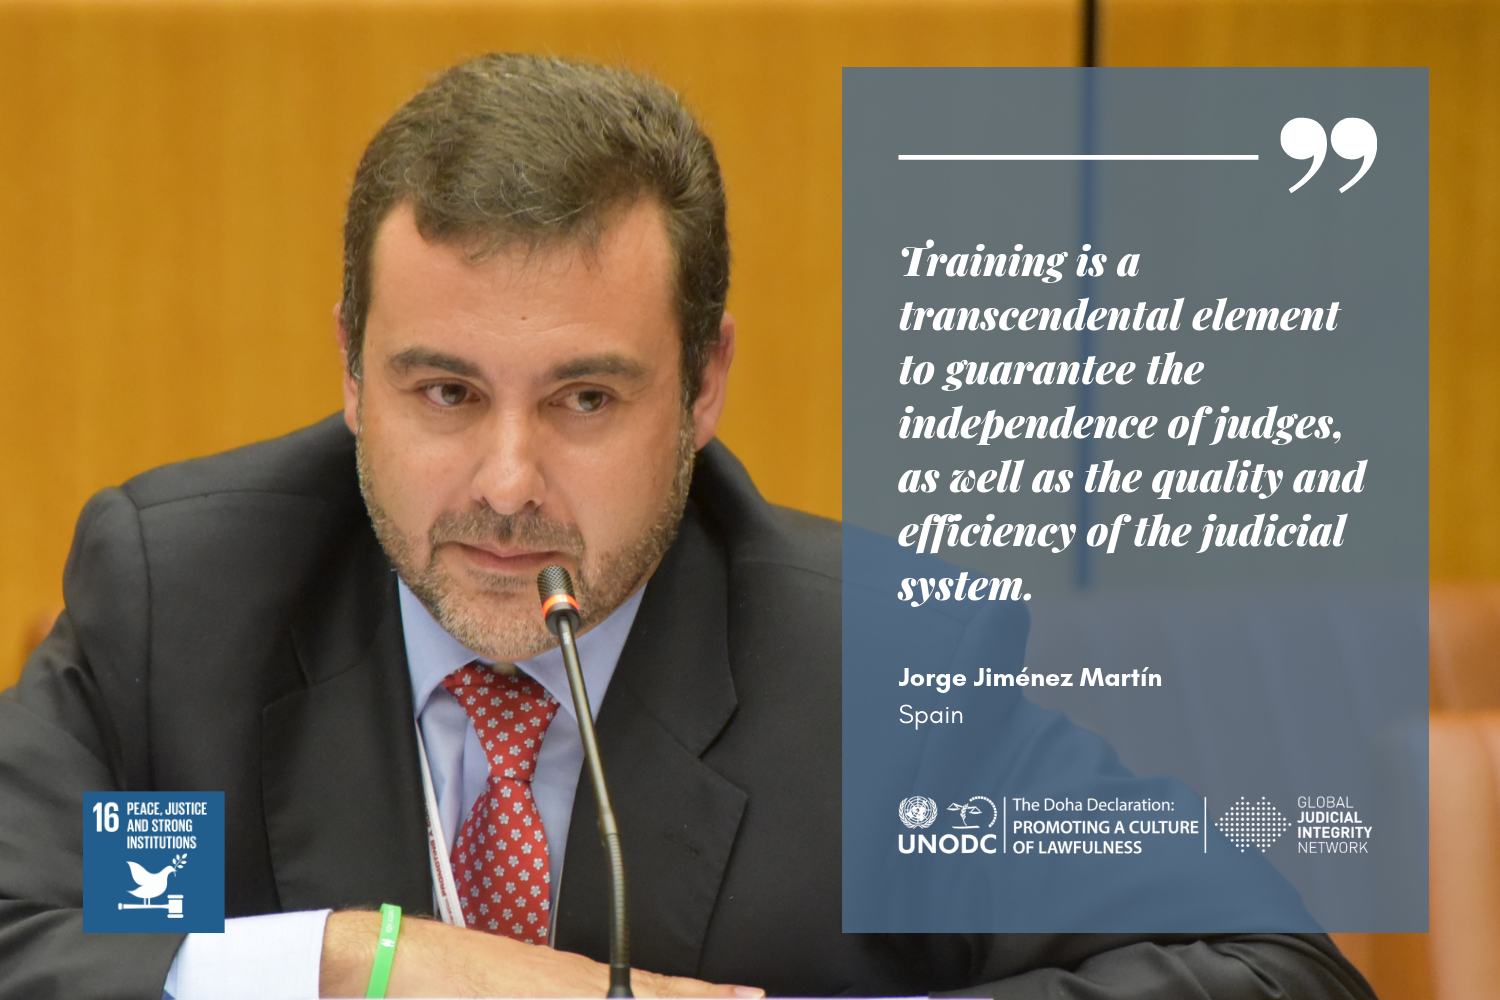 Guaranteeing an independent and efficient judiciary through training